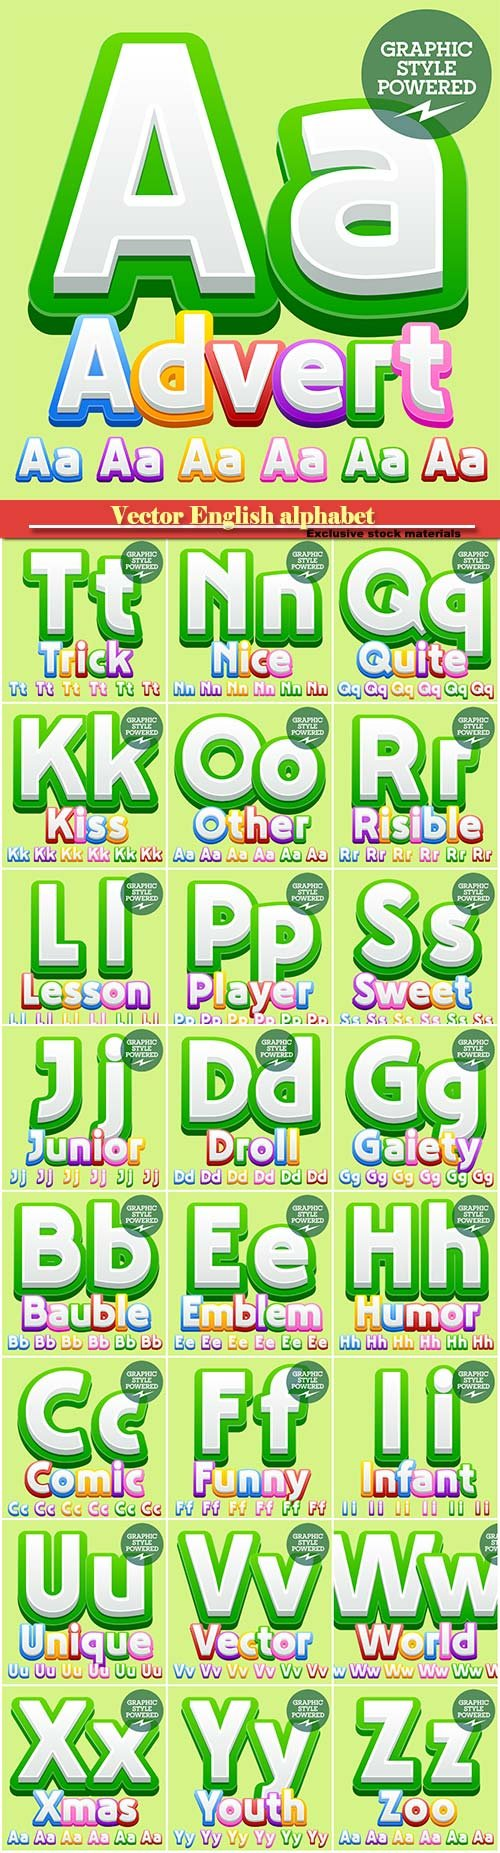 Vector English alphabet in bright colorful design